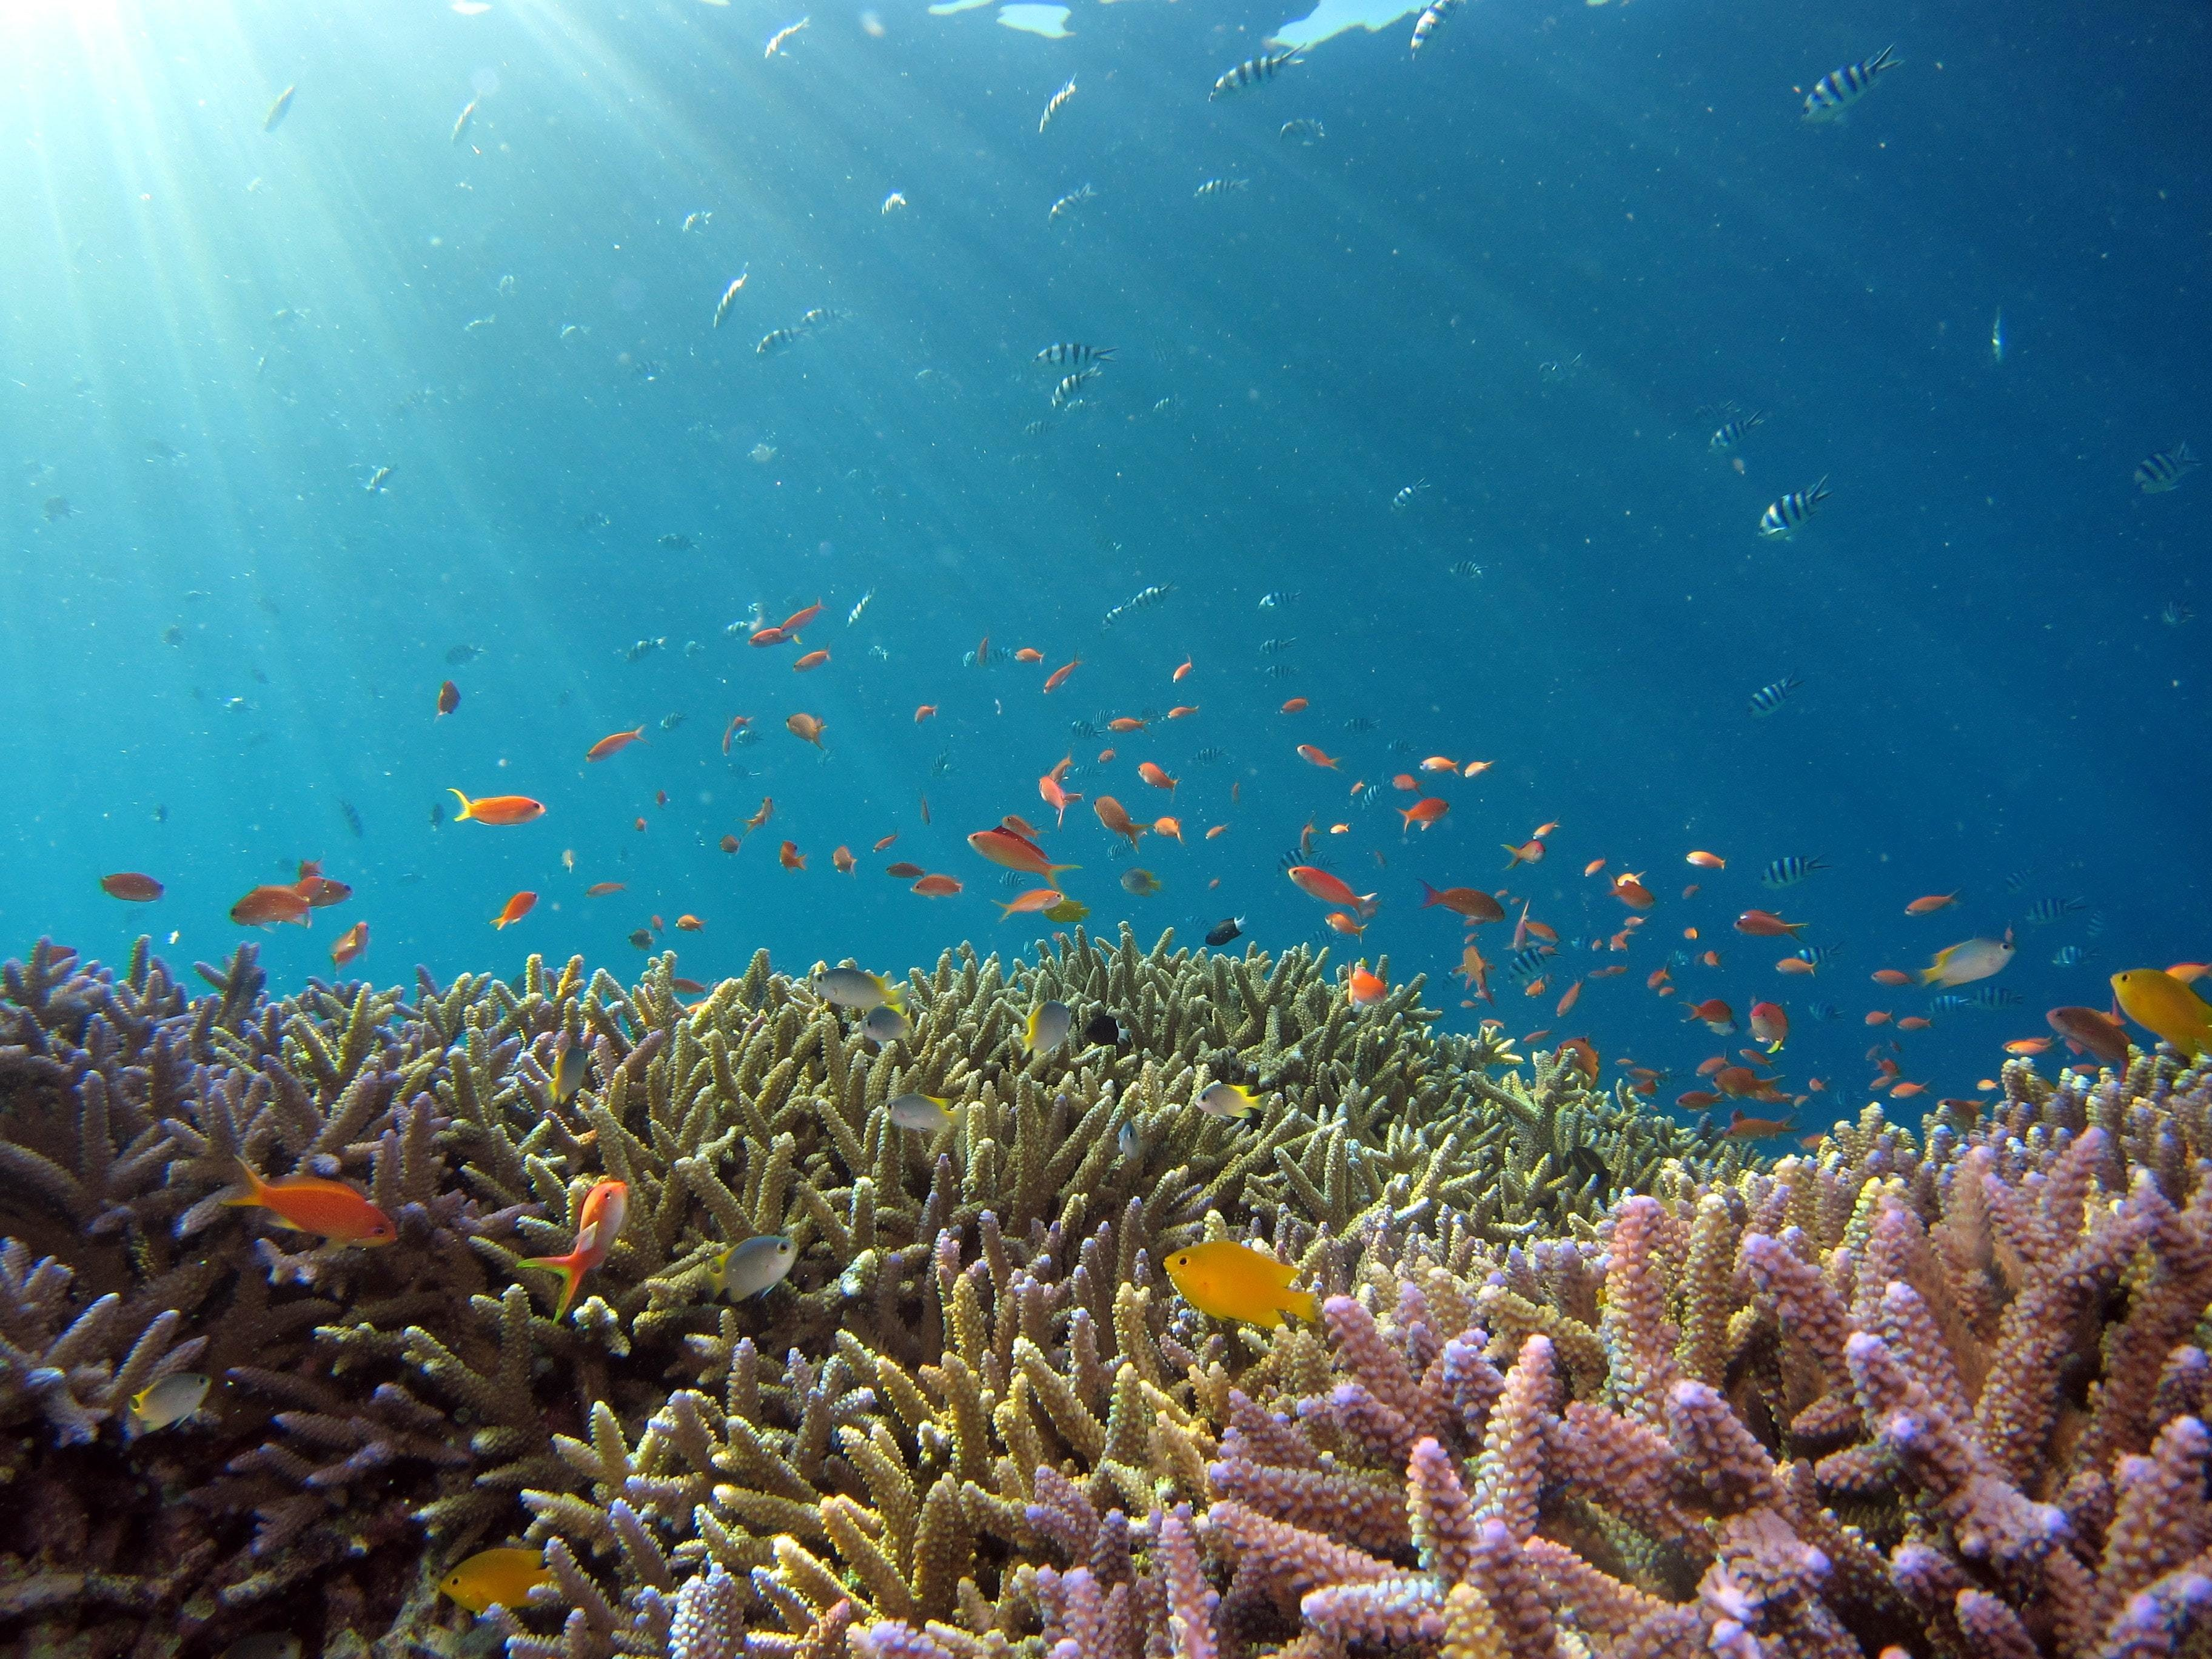 coral, shown here with fish swimming around it, is an important part of marine ecosystems - but climate change is causing the harmful process of coral bleaching